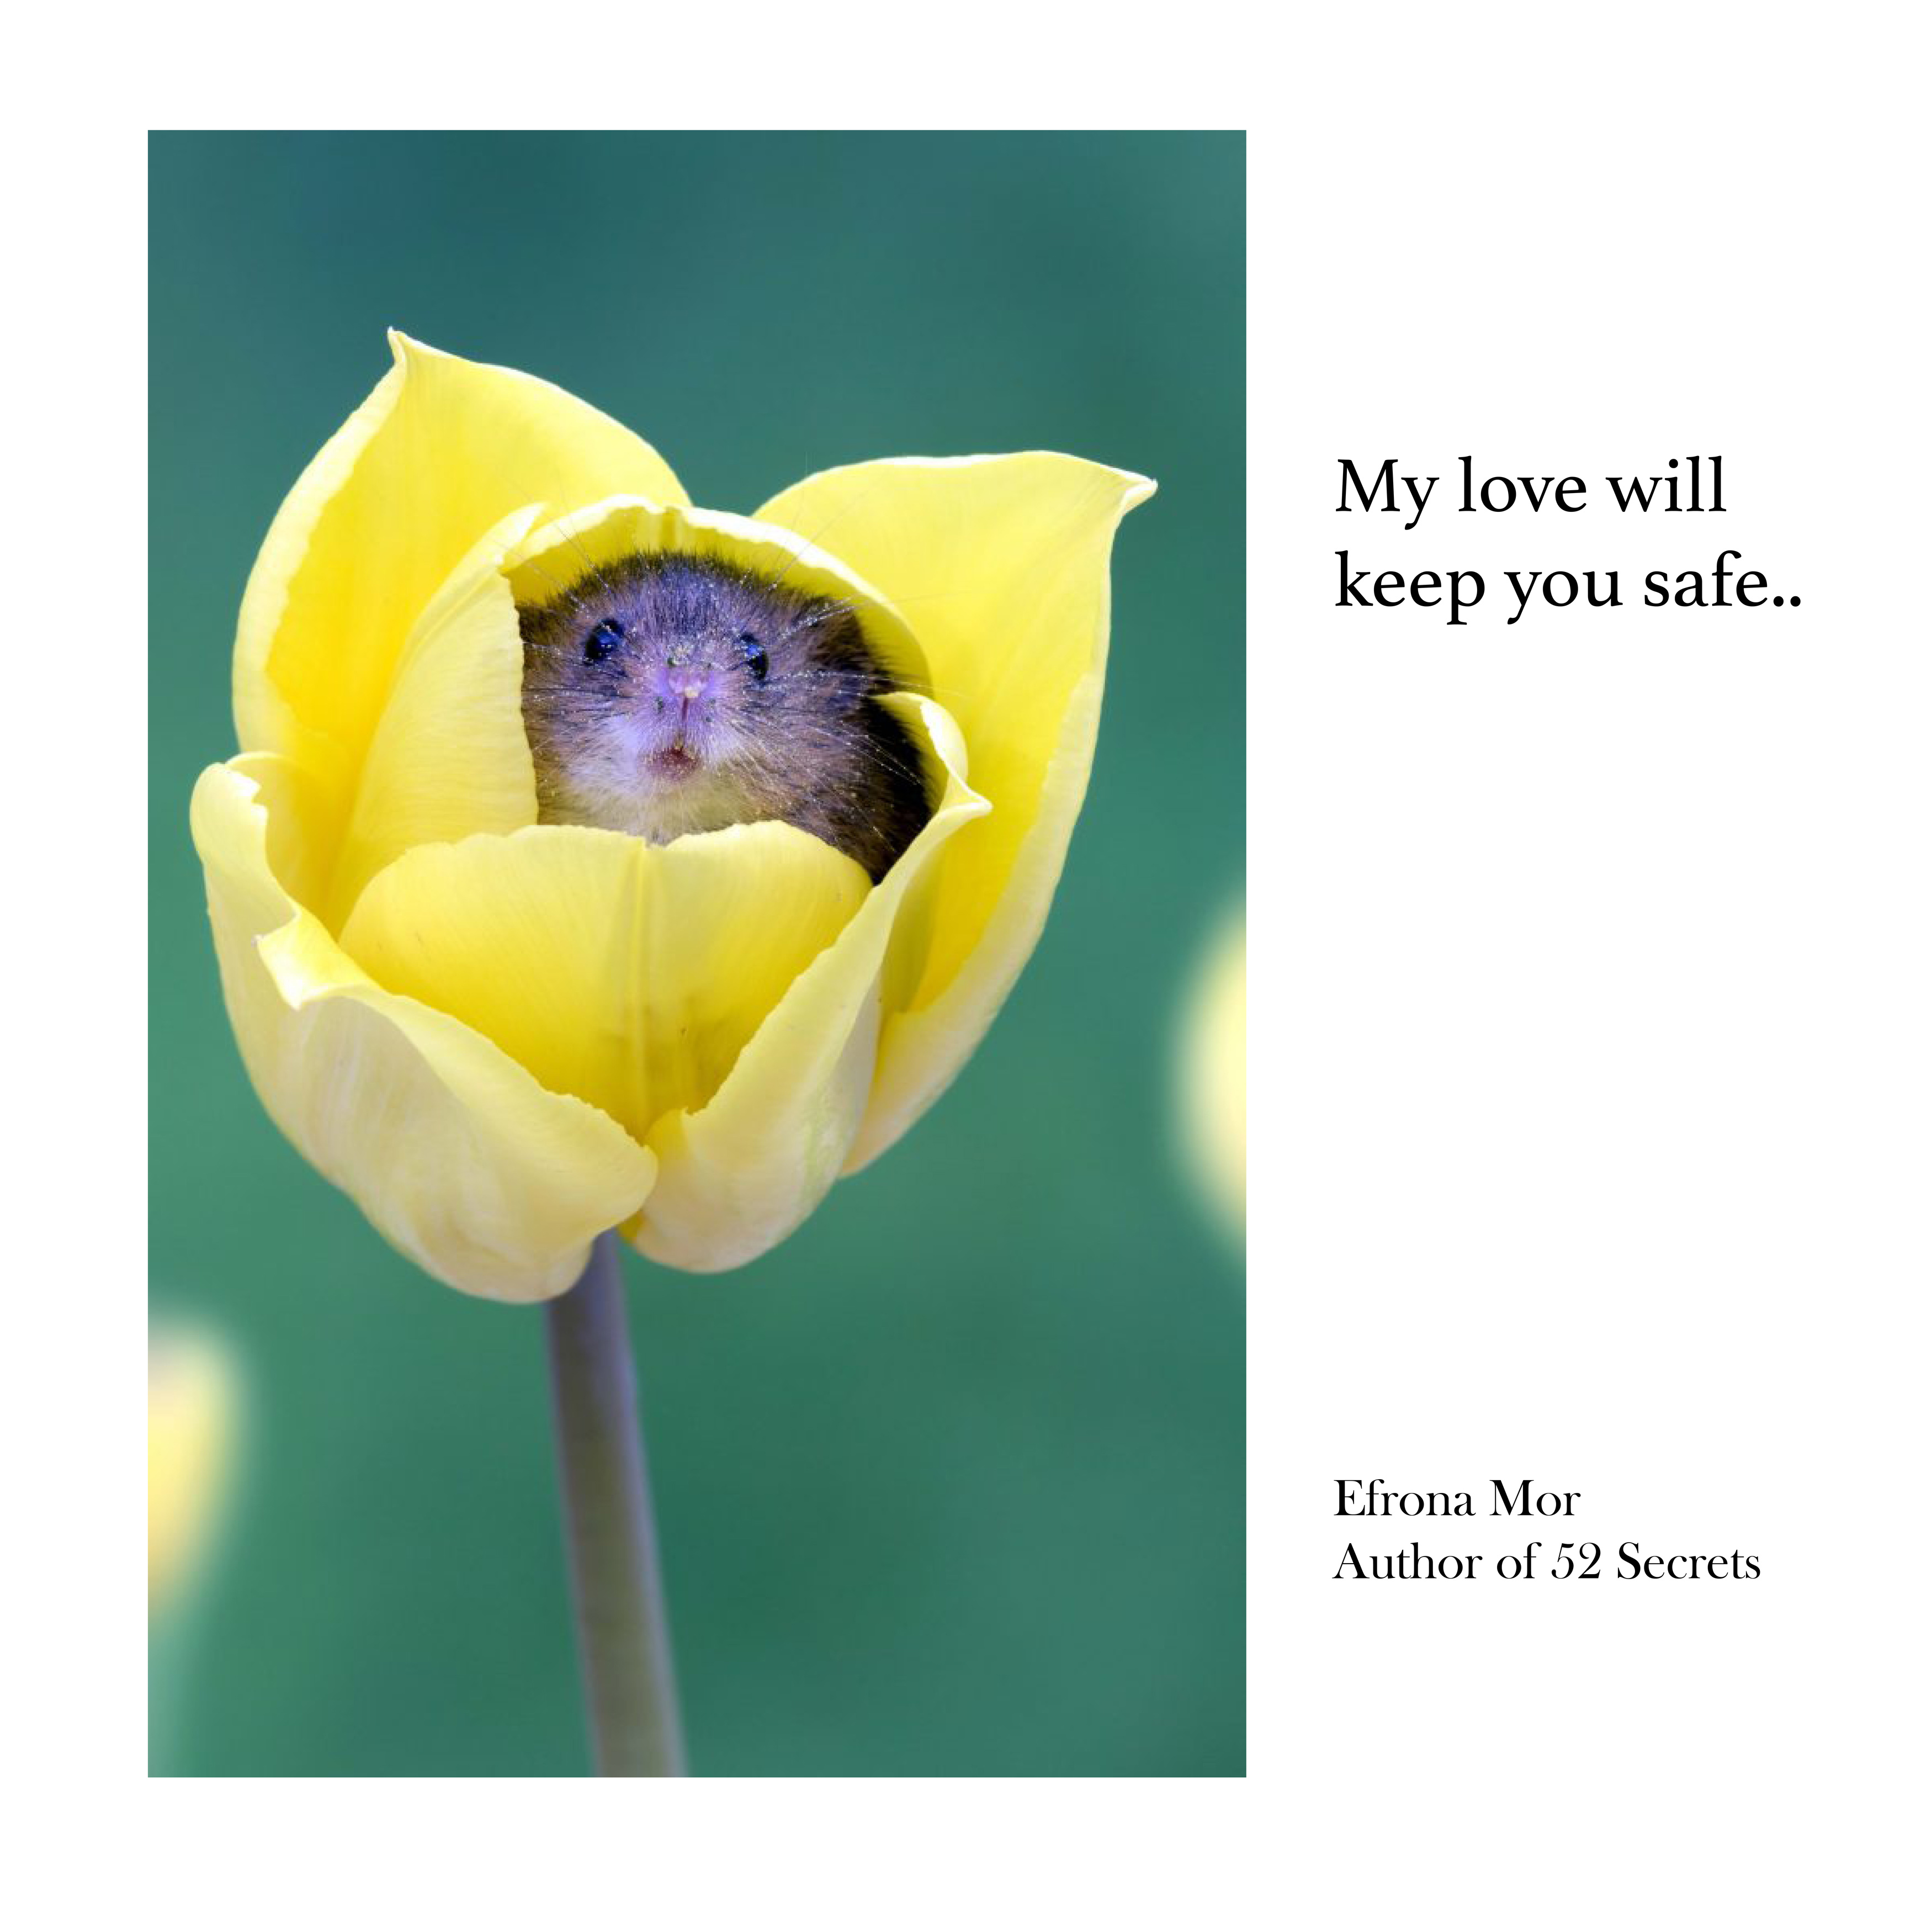 My-love-will-keep-you-safe-3500